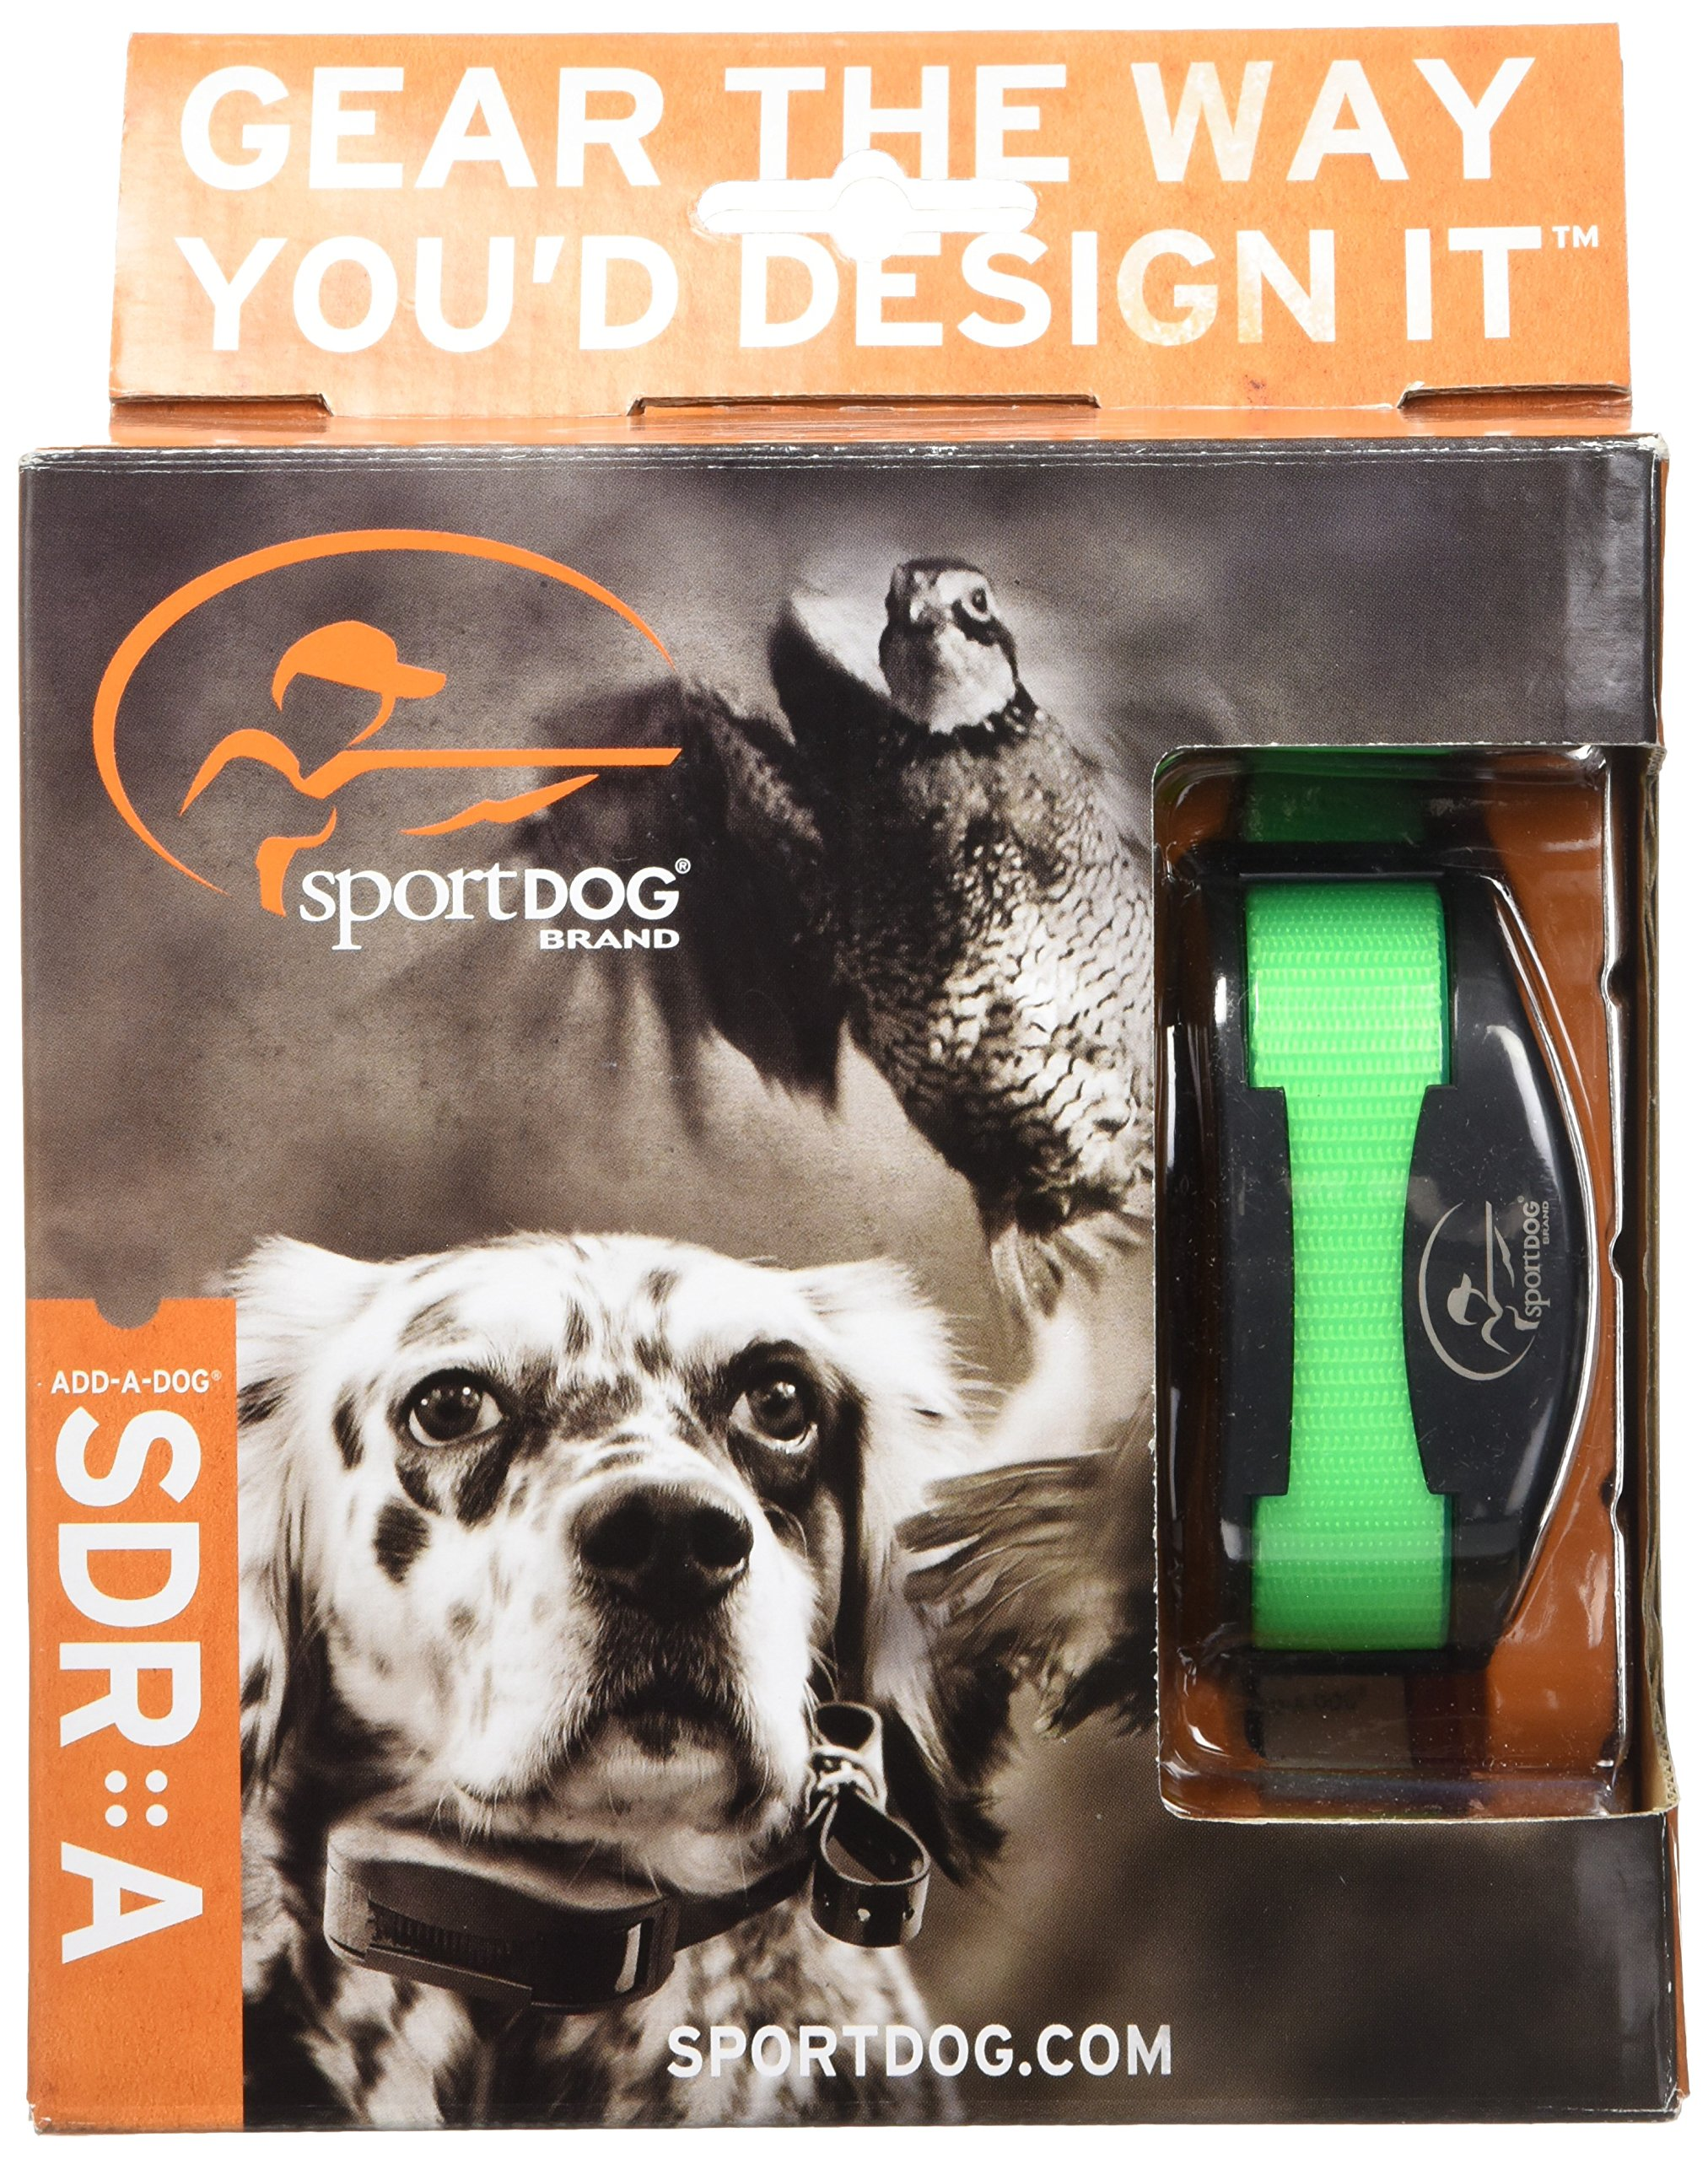 SportDOG Brand SportHunter 1825 Add-A-Dog Collar - Additional, Replacement, or Extra Collar for Your Remote Trainer - Waterproof and Rechargeable with Tone, Vibration, and Shock